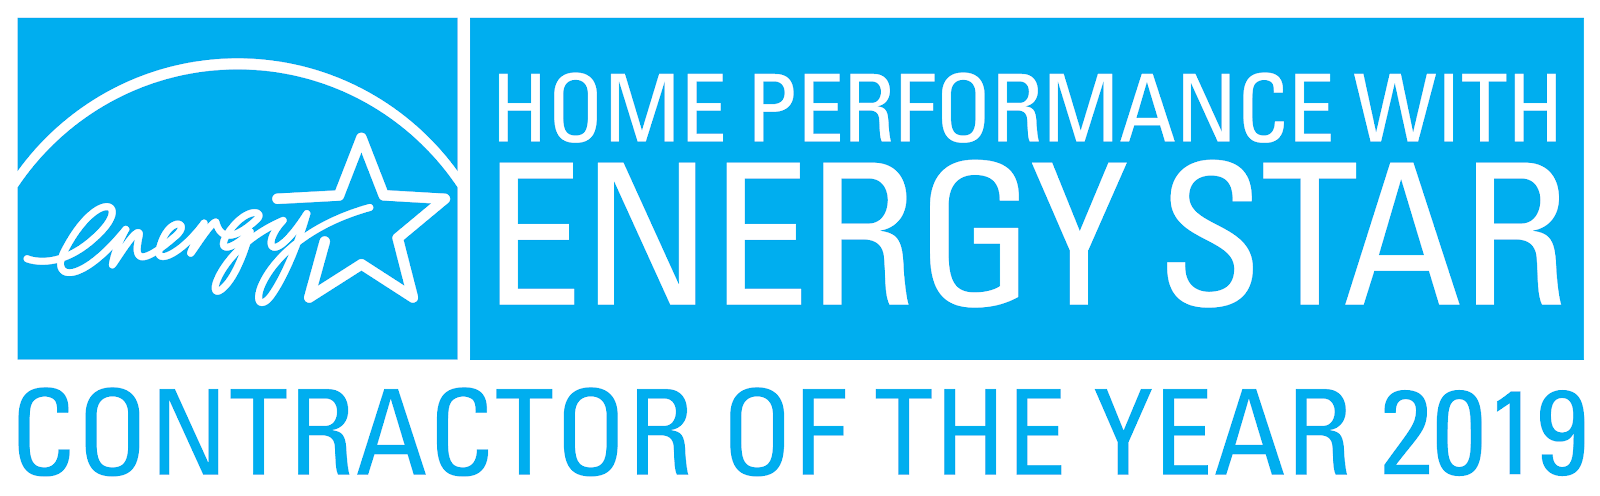 energy star logo contractor of the year 2019